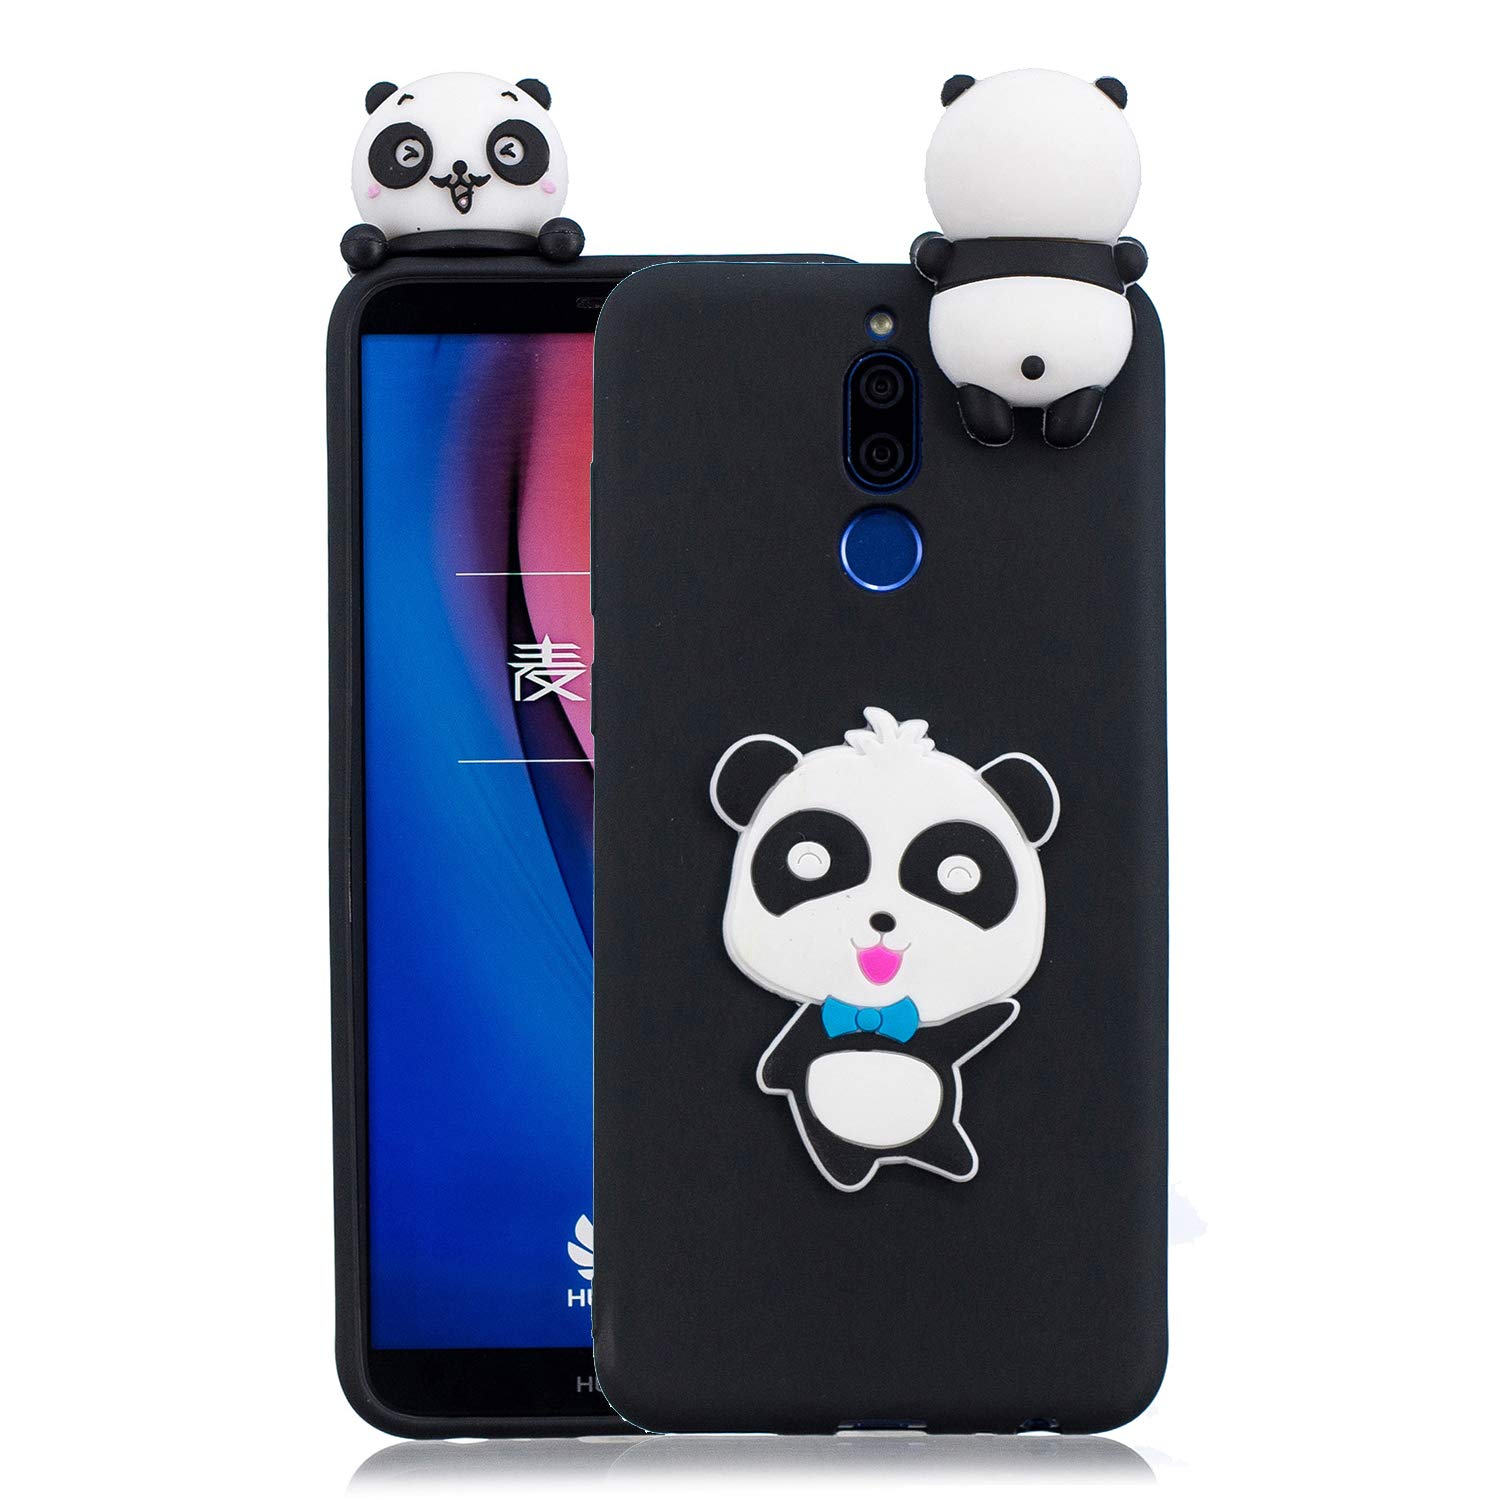 for Huawei Mate 10 Lite Silicone Case with Screen Protector,QFFUN 3D Cartoon [Panda] Pattern Design Soft Flexible Slim Fit Gel Rubber Cover,Shockproof Anti-Scratch Protective Case Bumper by QFFUN (Image #1)